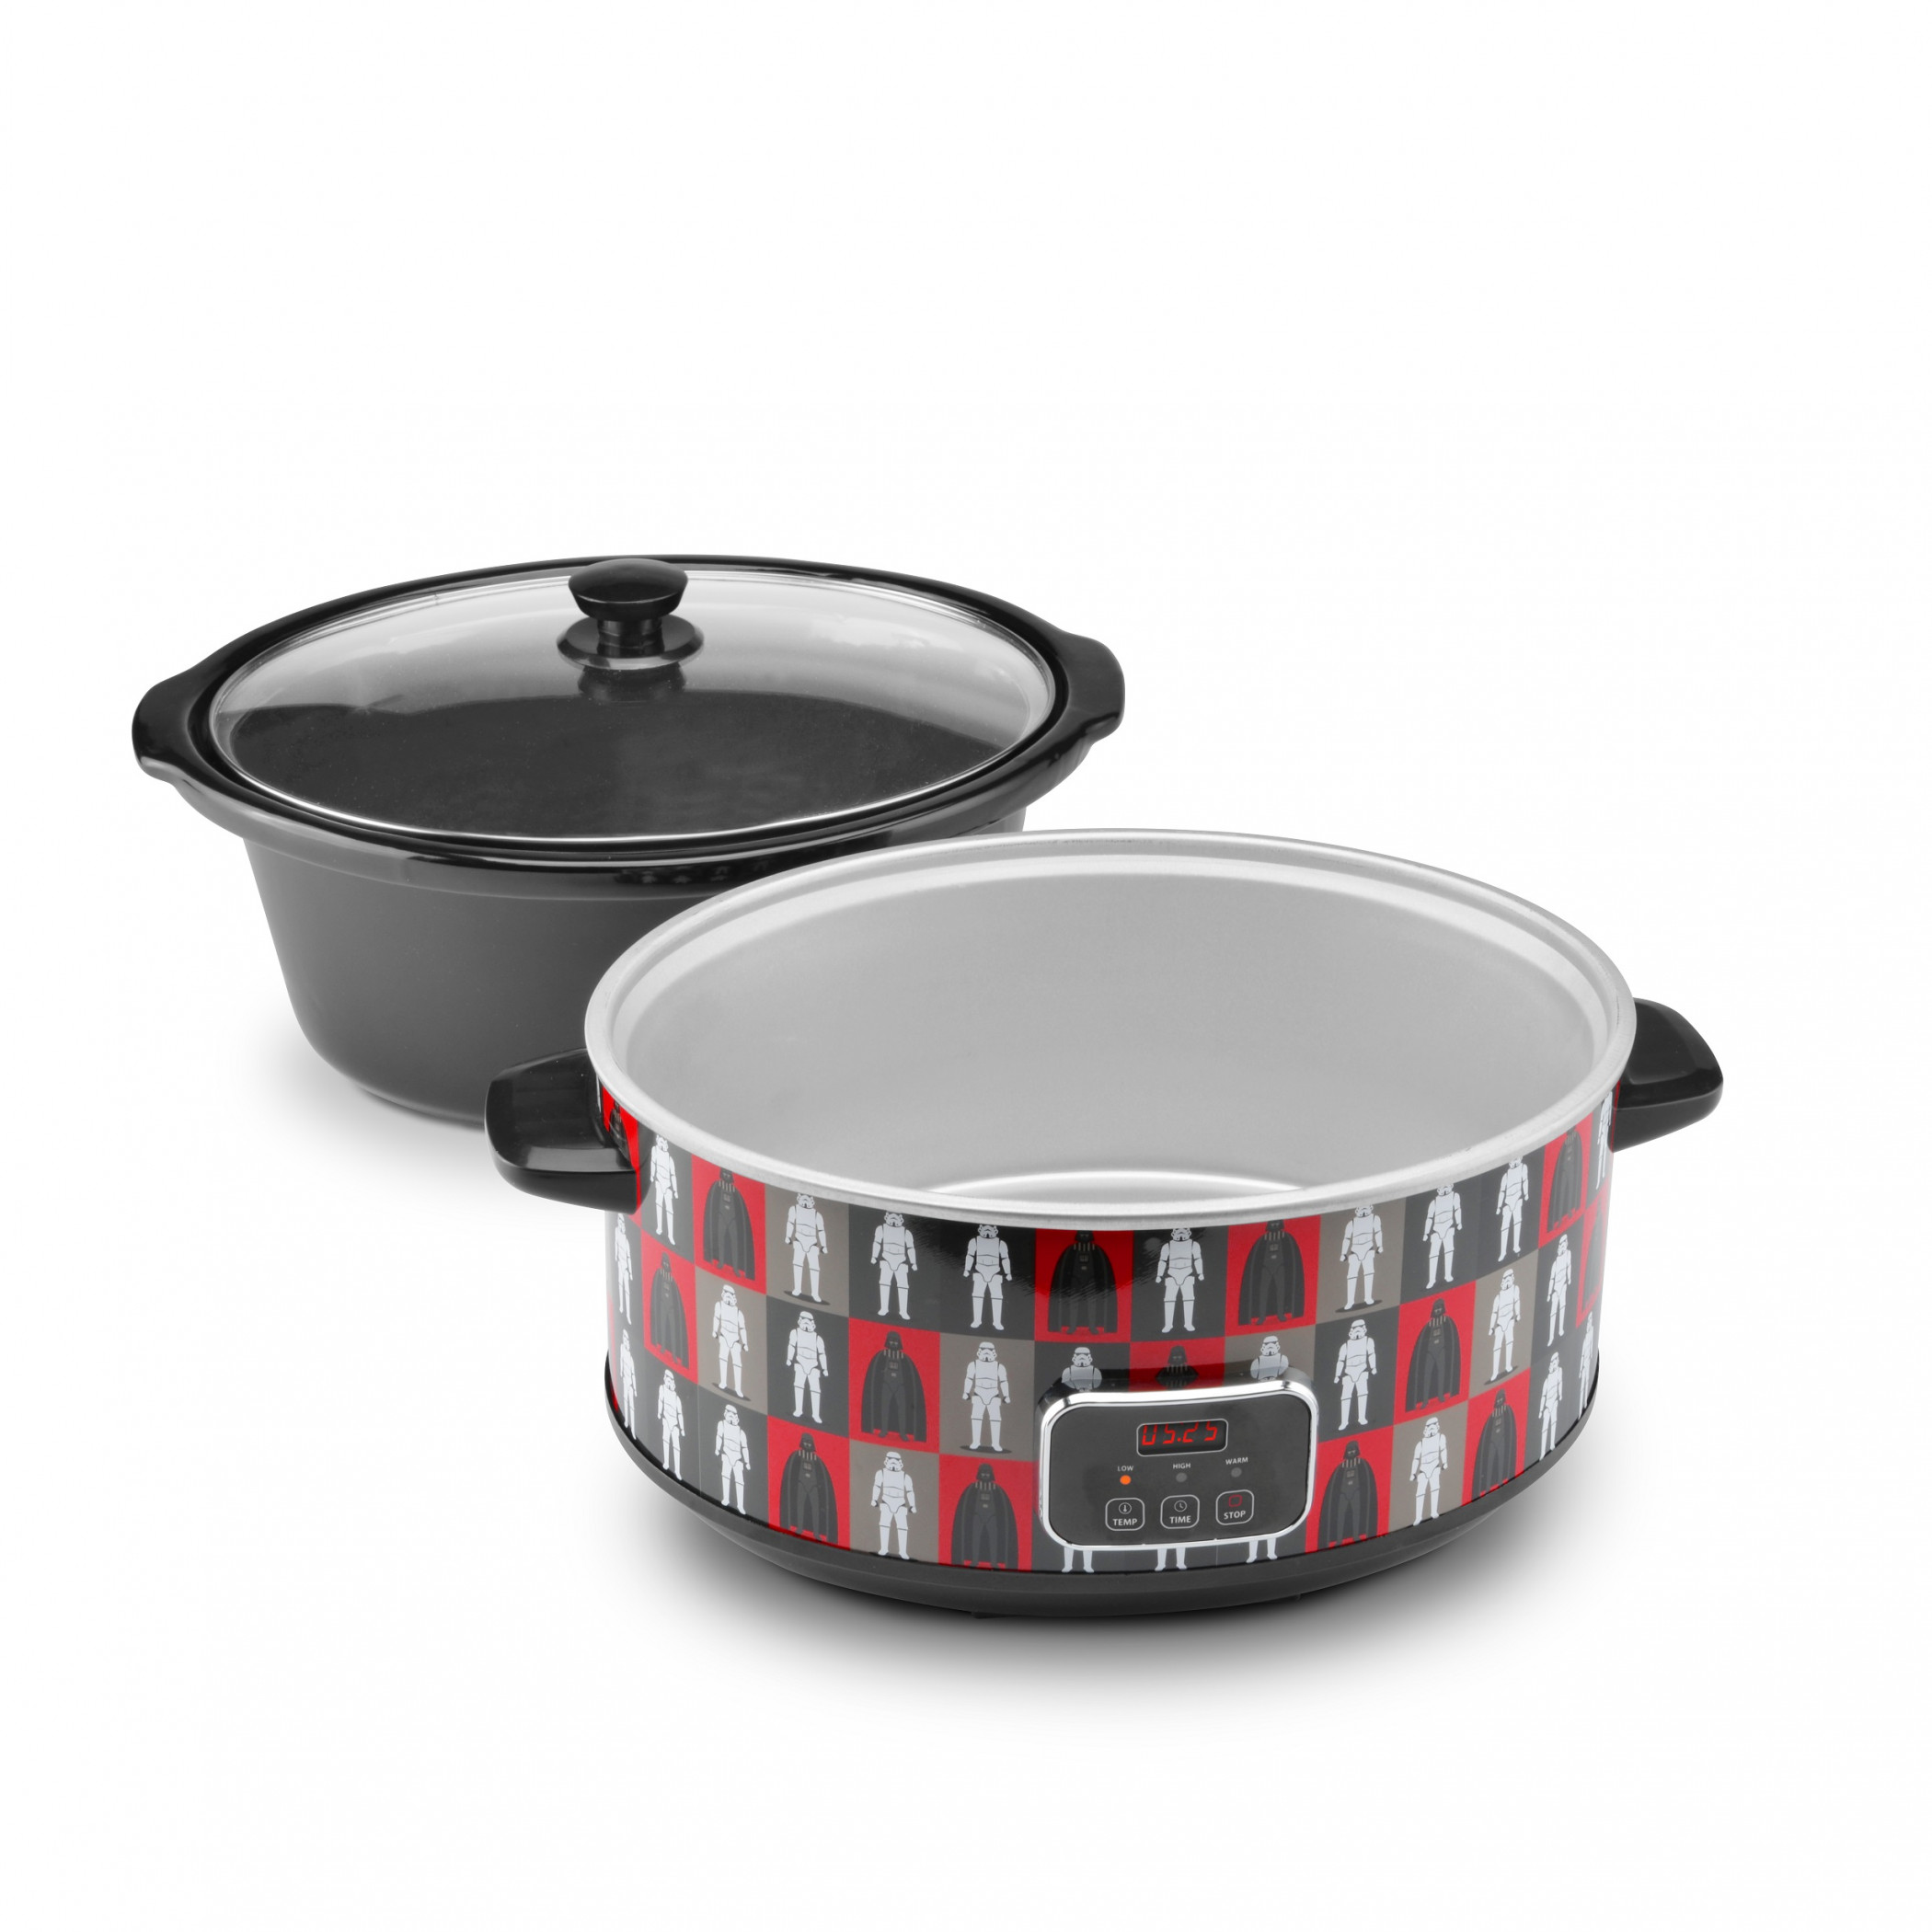 Star Wars 7-Quart Slow Cooker with Sound